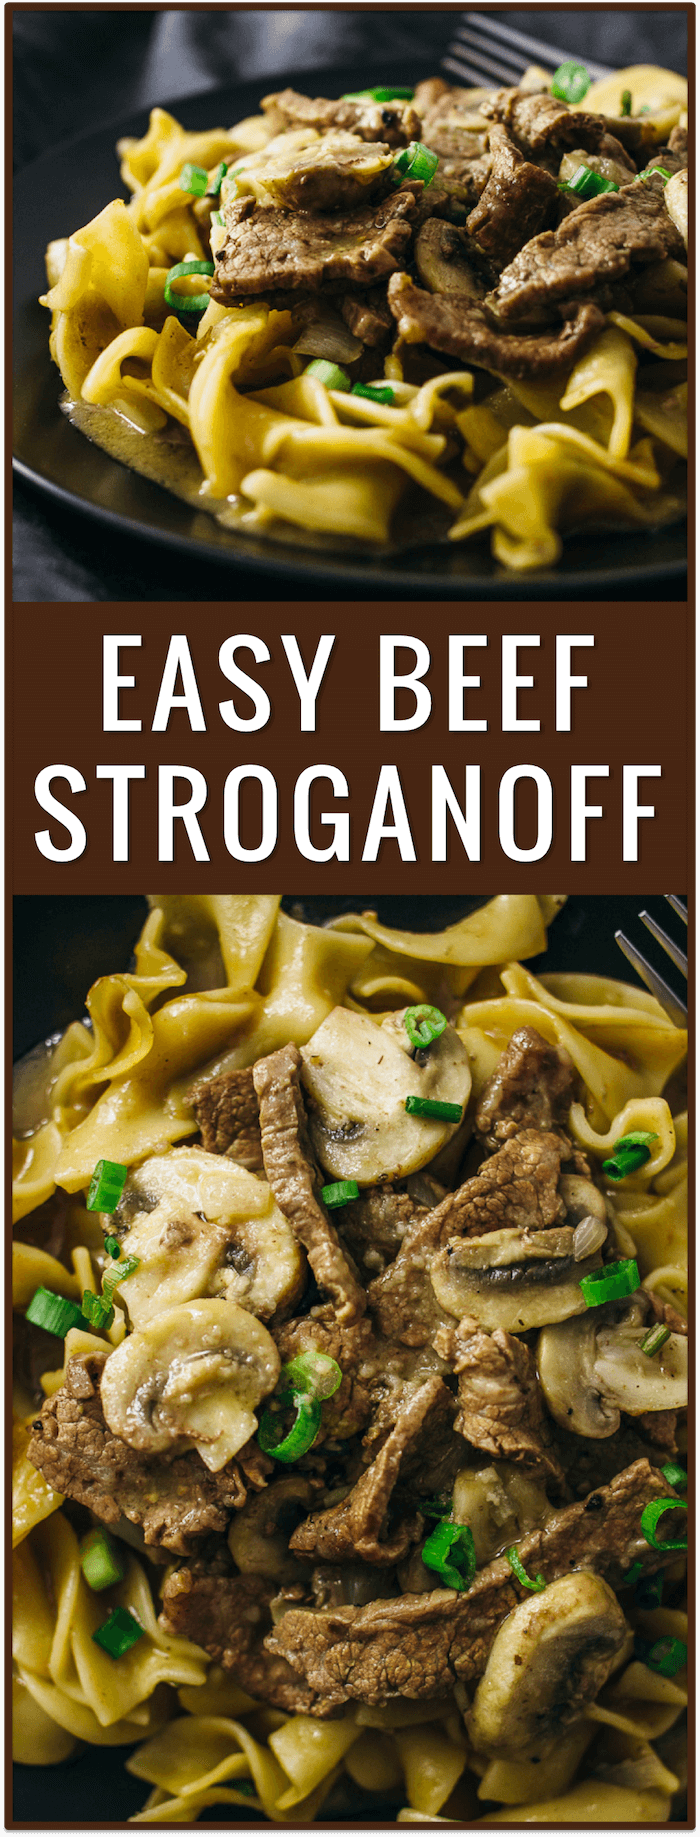 Easy beef stroganoff with flank steak and mushrooms, best beef stroganoff, classic beef stroganoff, beef stroganoff slow cooker, easy, dinner, recipe, pasta, dish, lunch, idea, noodles, comfort food, simple, fast, russian